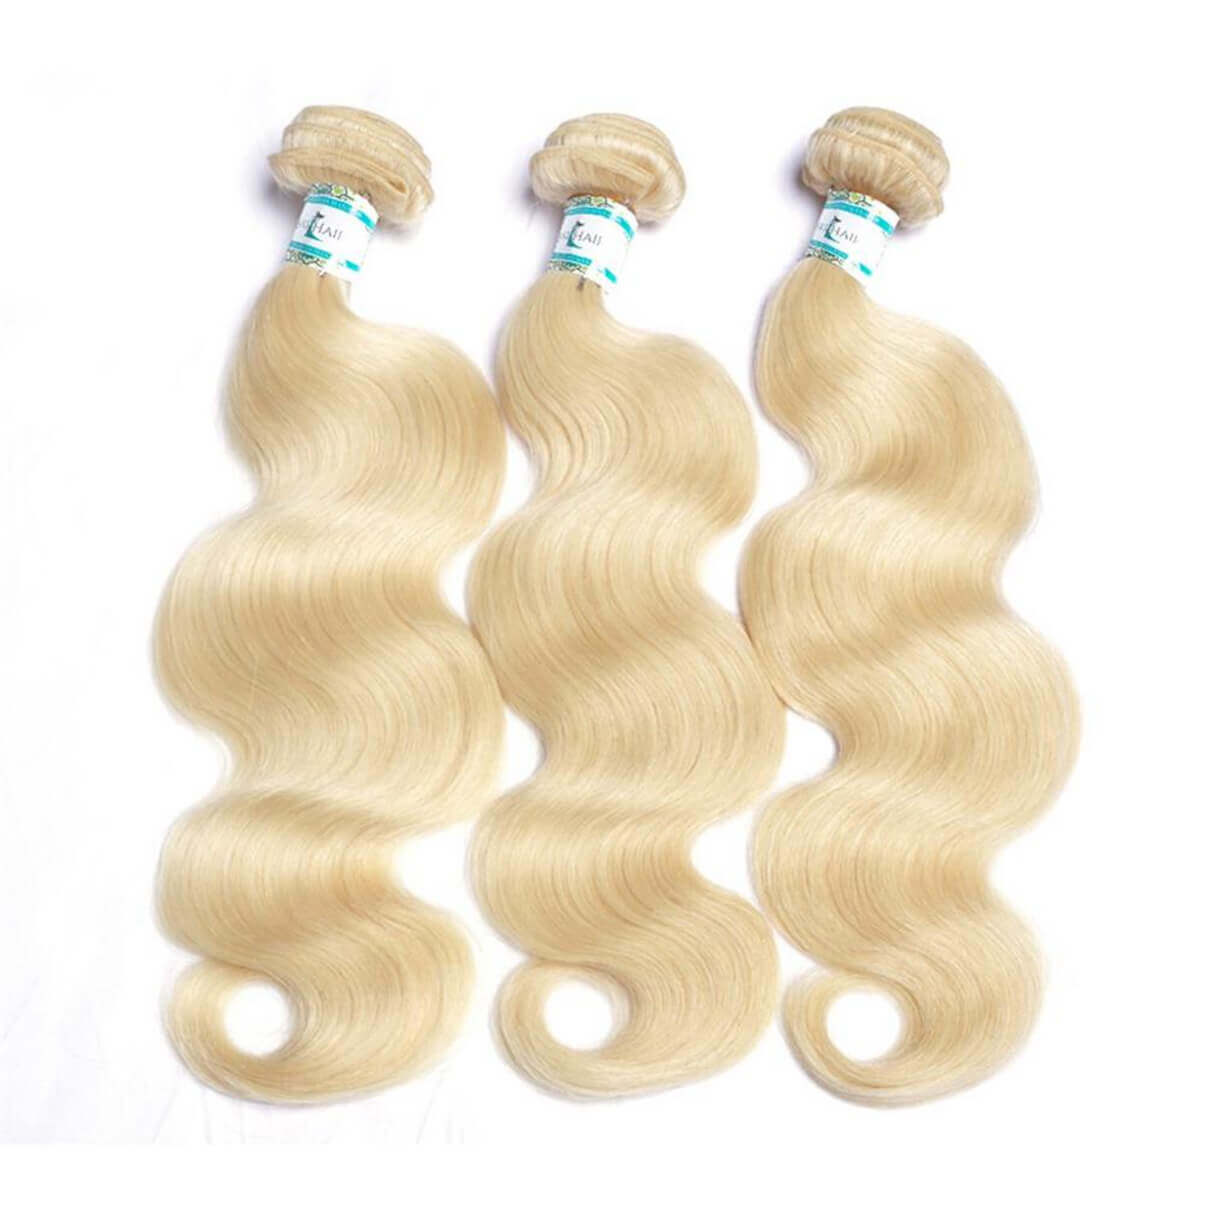 Lakihair 10A 613 Blonde Hair Bundles Body Wave 1 Bundles Brazilian Virgin Human Hair